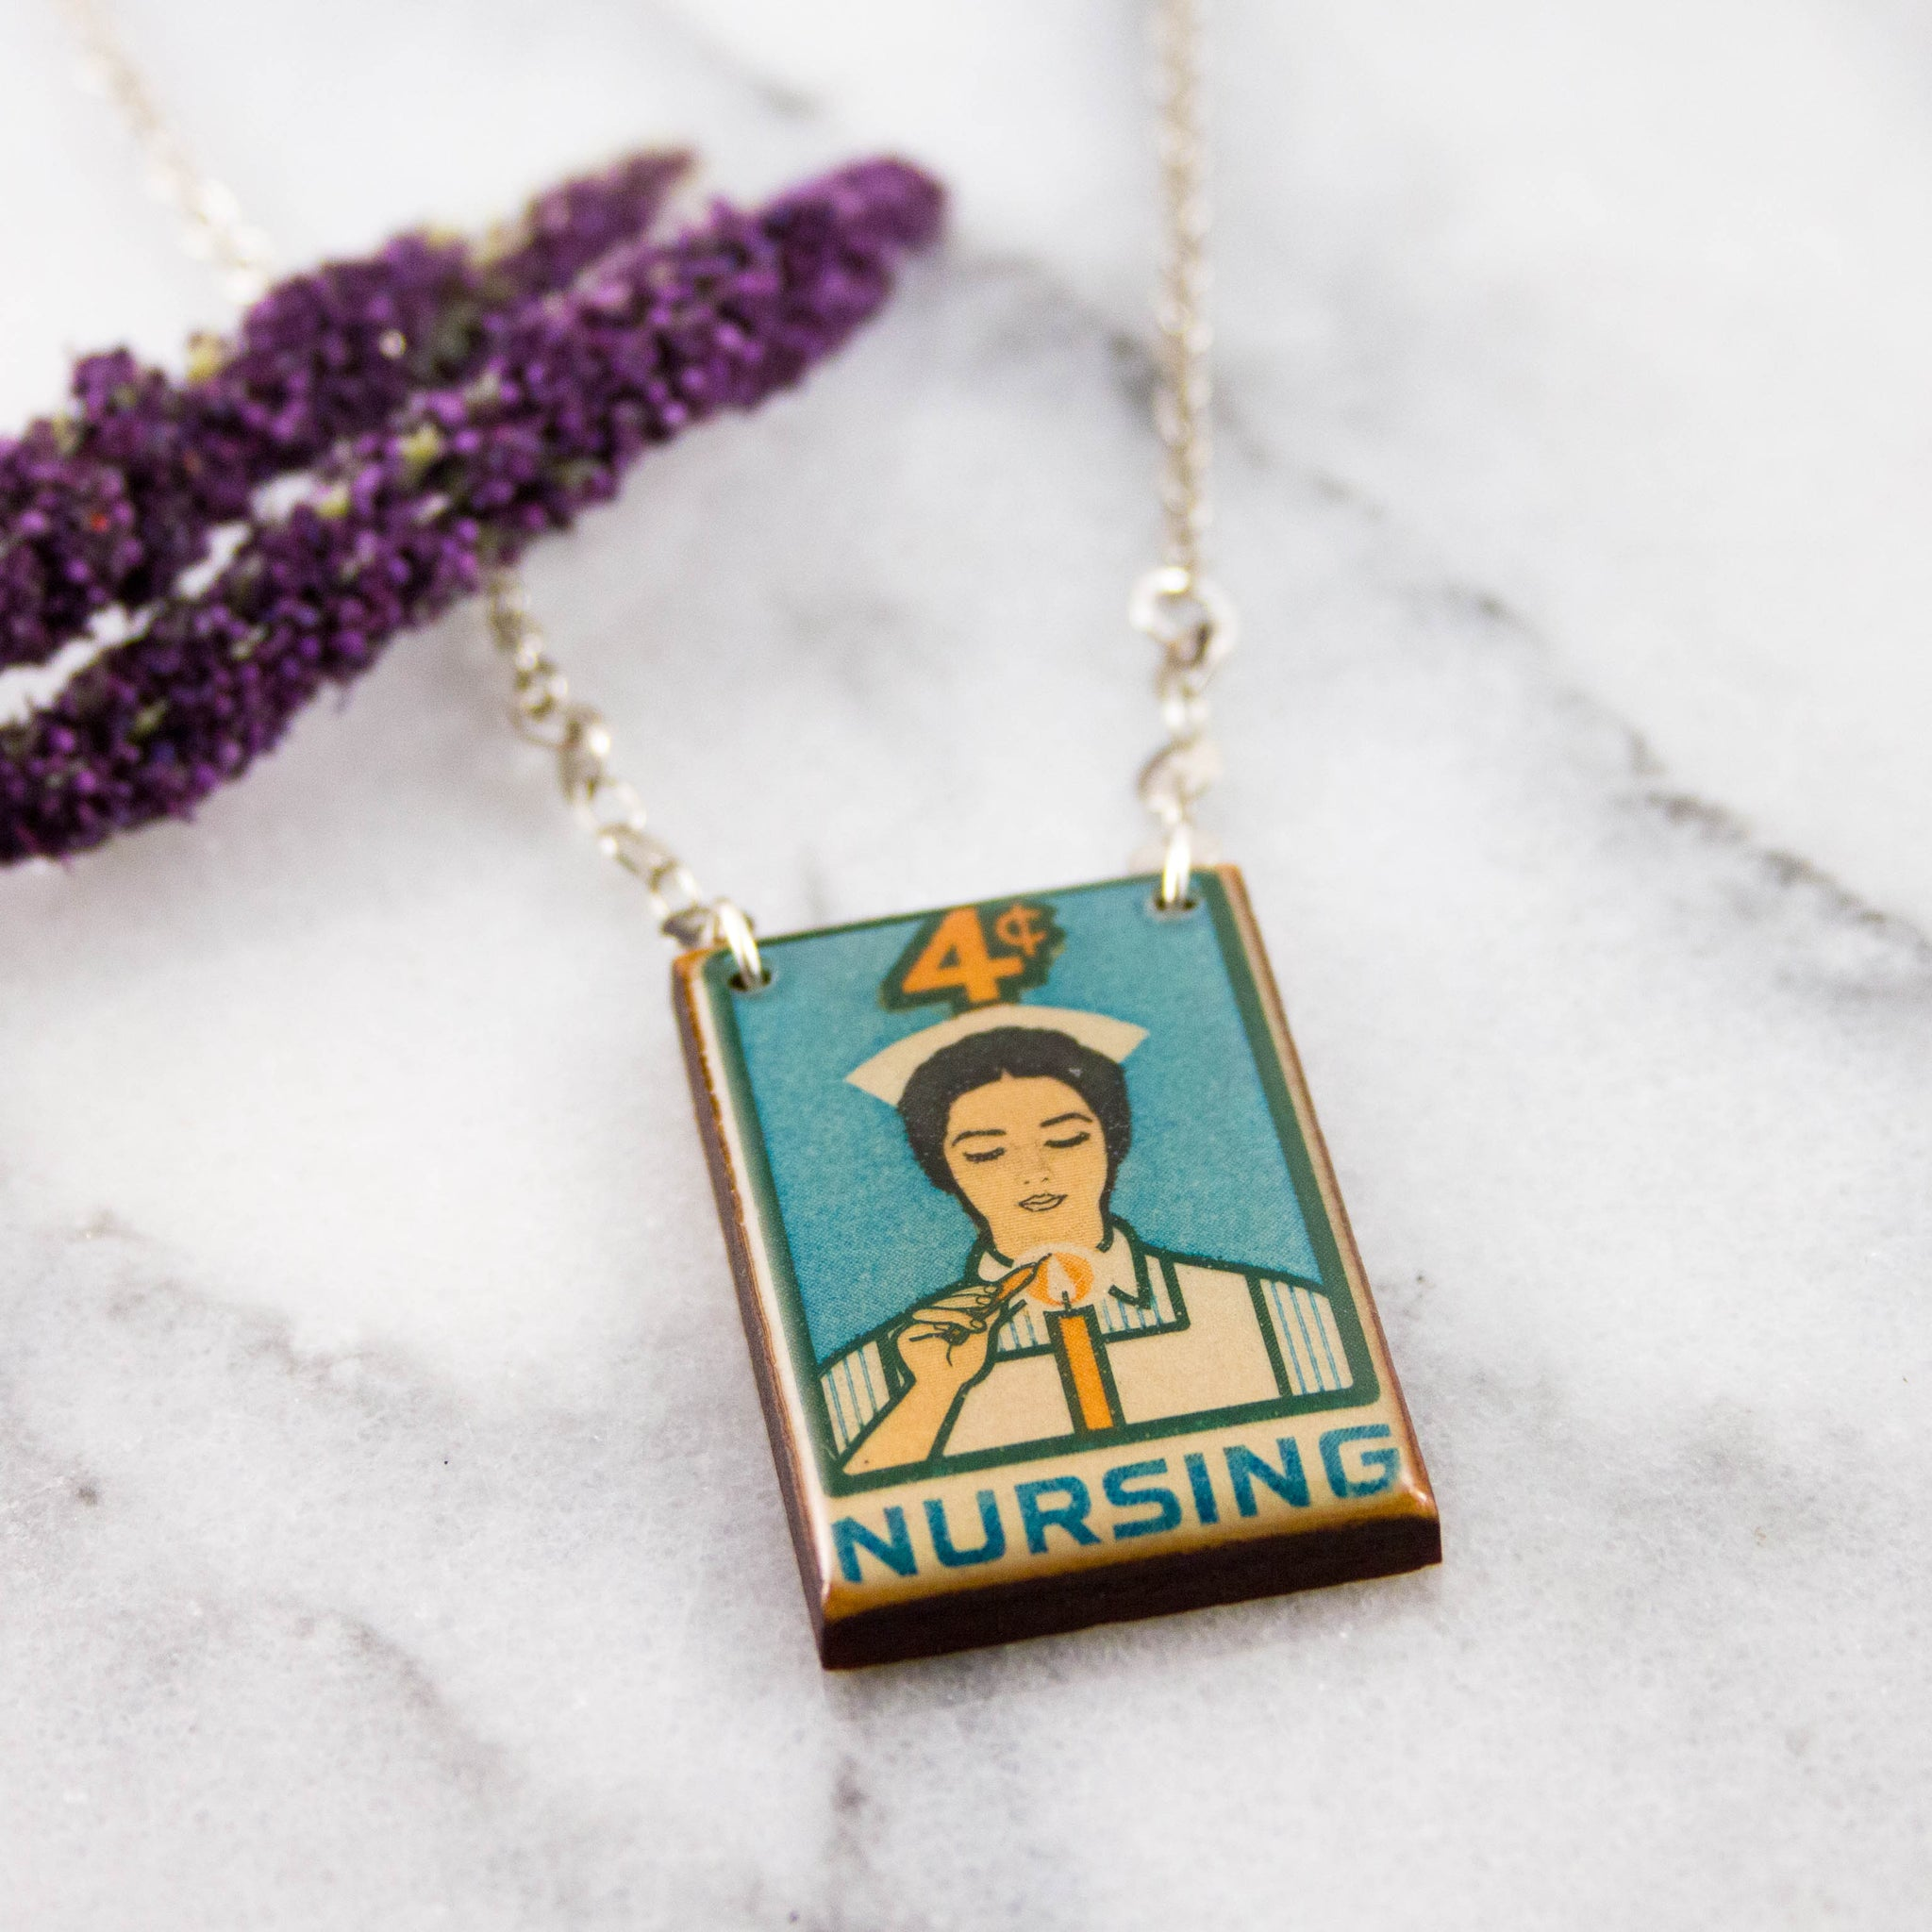 US- Vintage Nursing Stamp Necklace